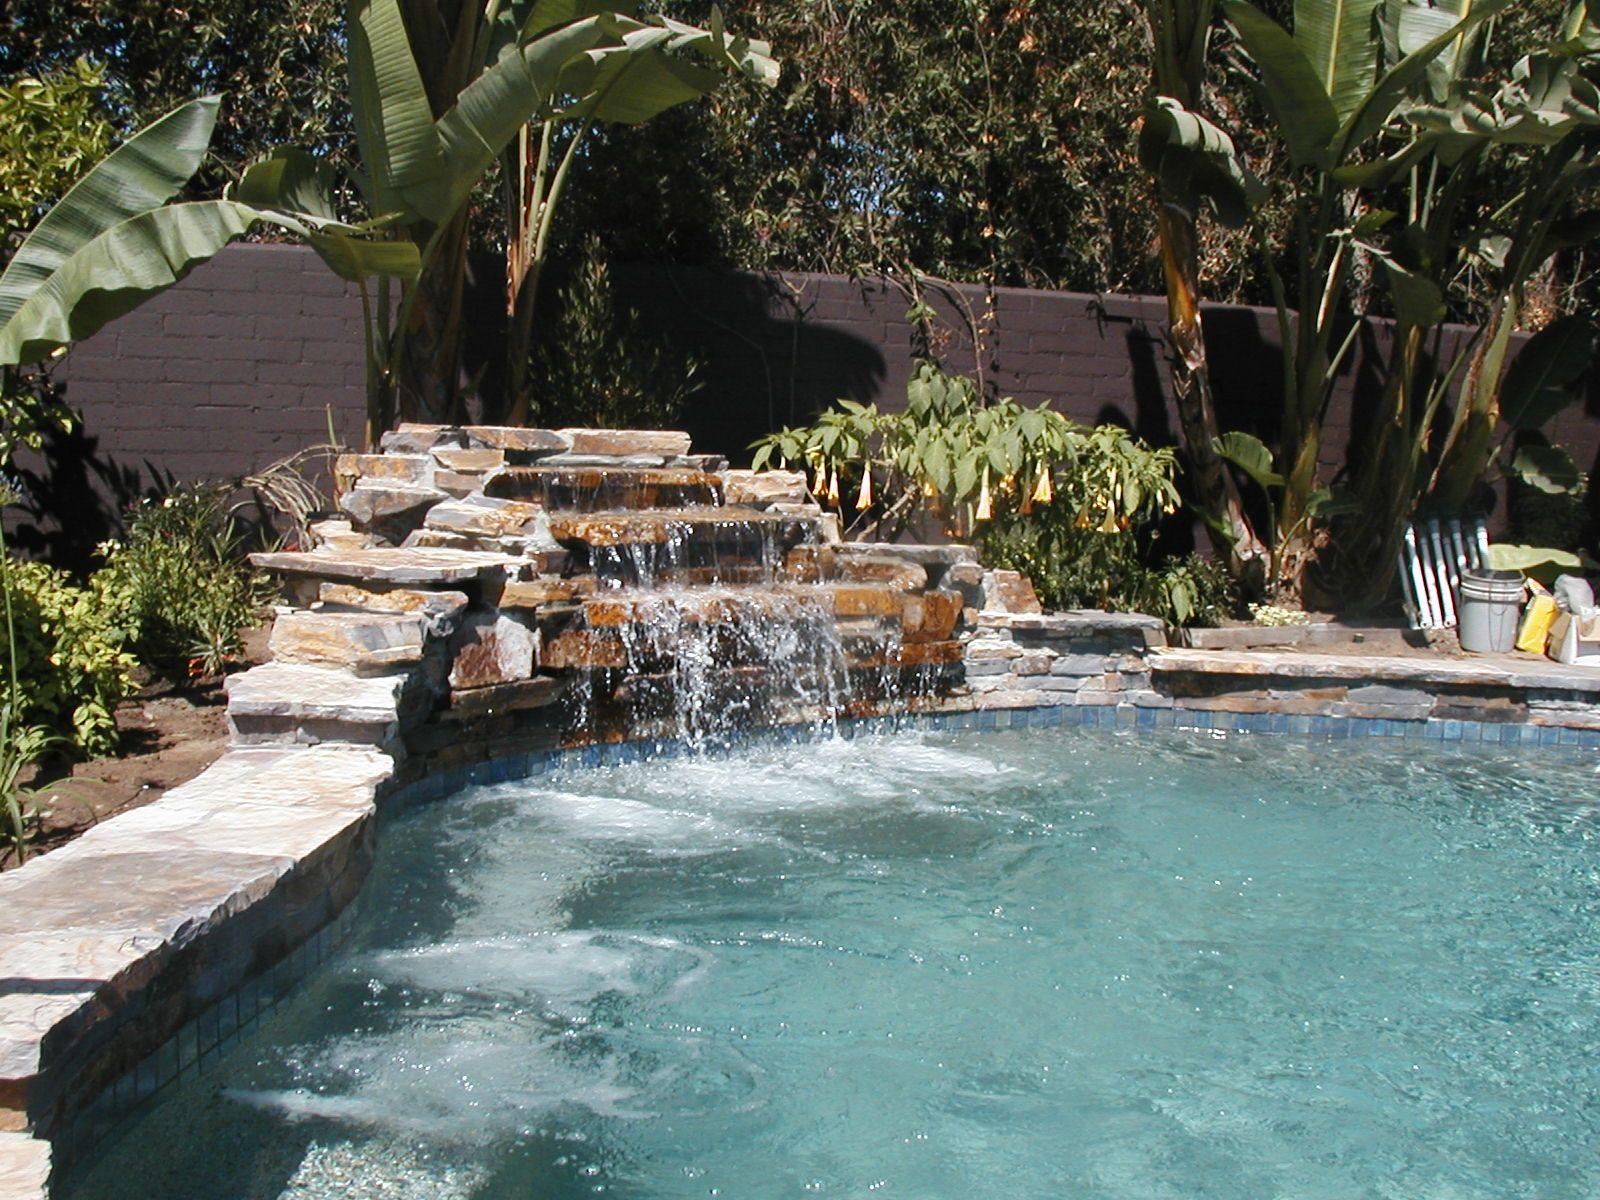 Swimming pool with rock waterfall Outdoor renovation